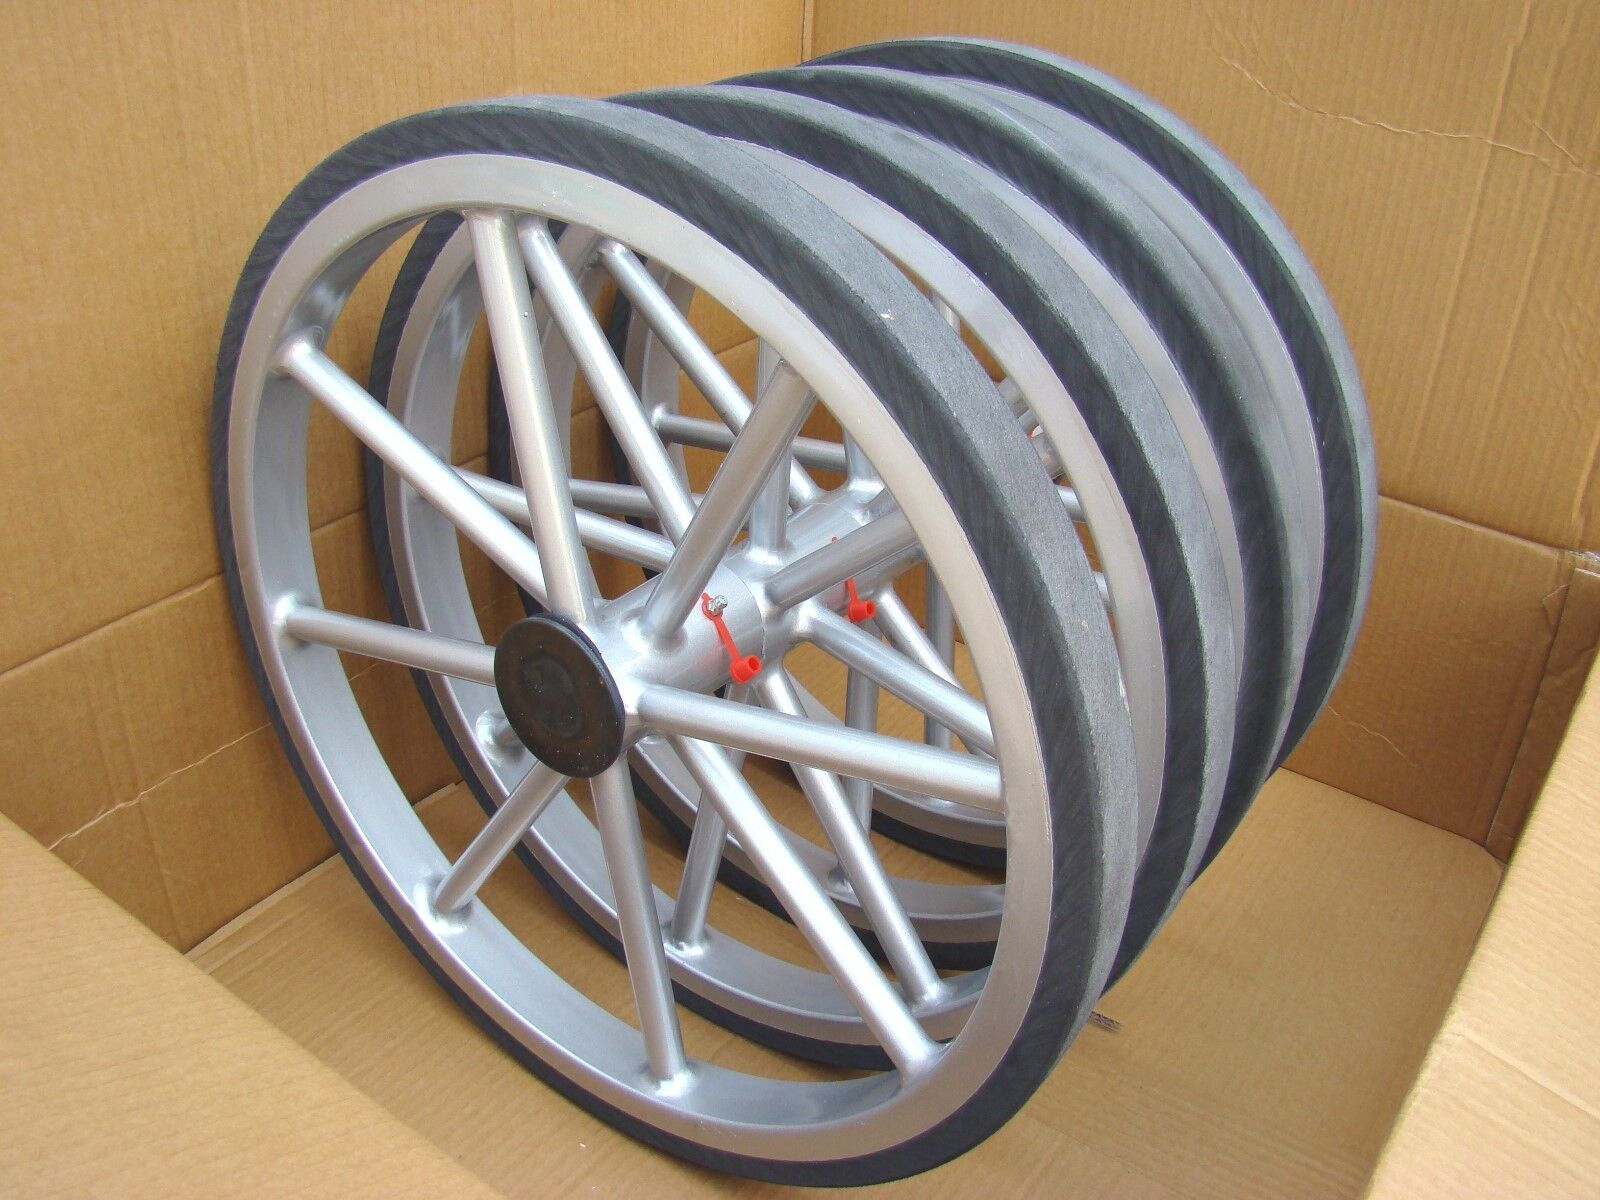 Horse Carriage Cart Wheels Solid Rubber Tyre With Axel Fittings High Quality